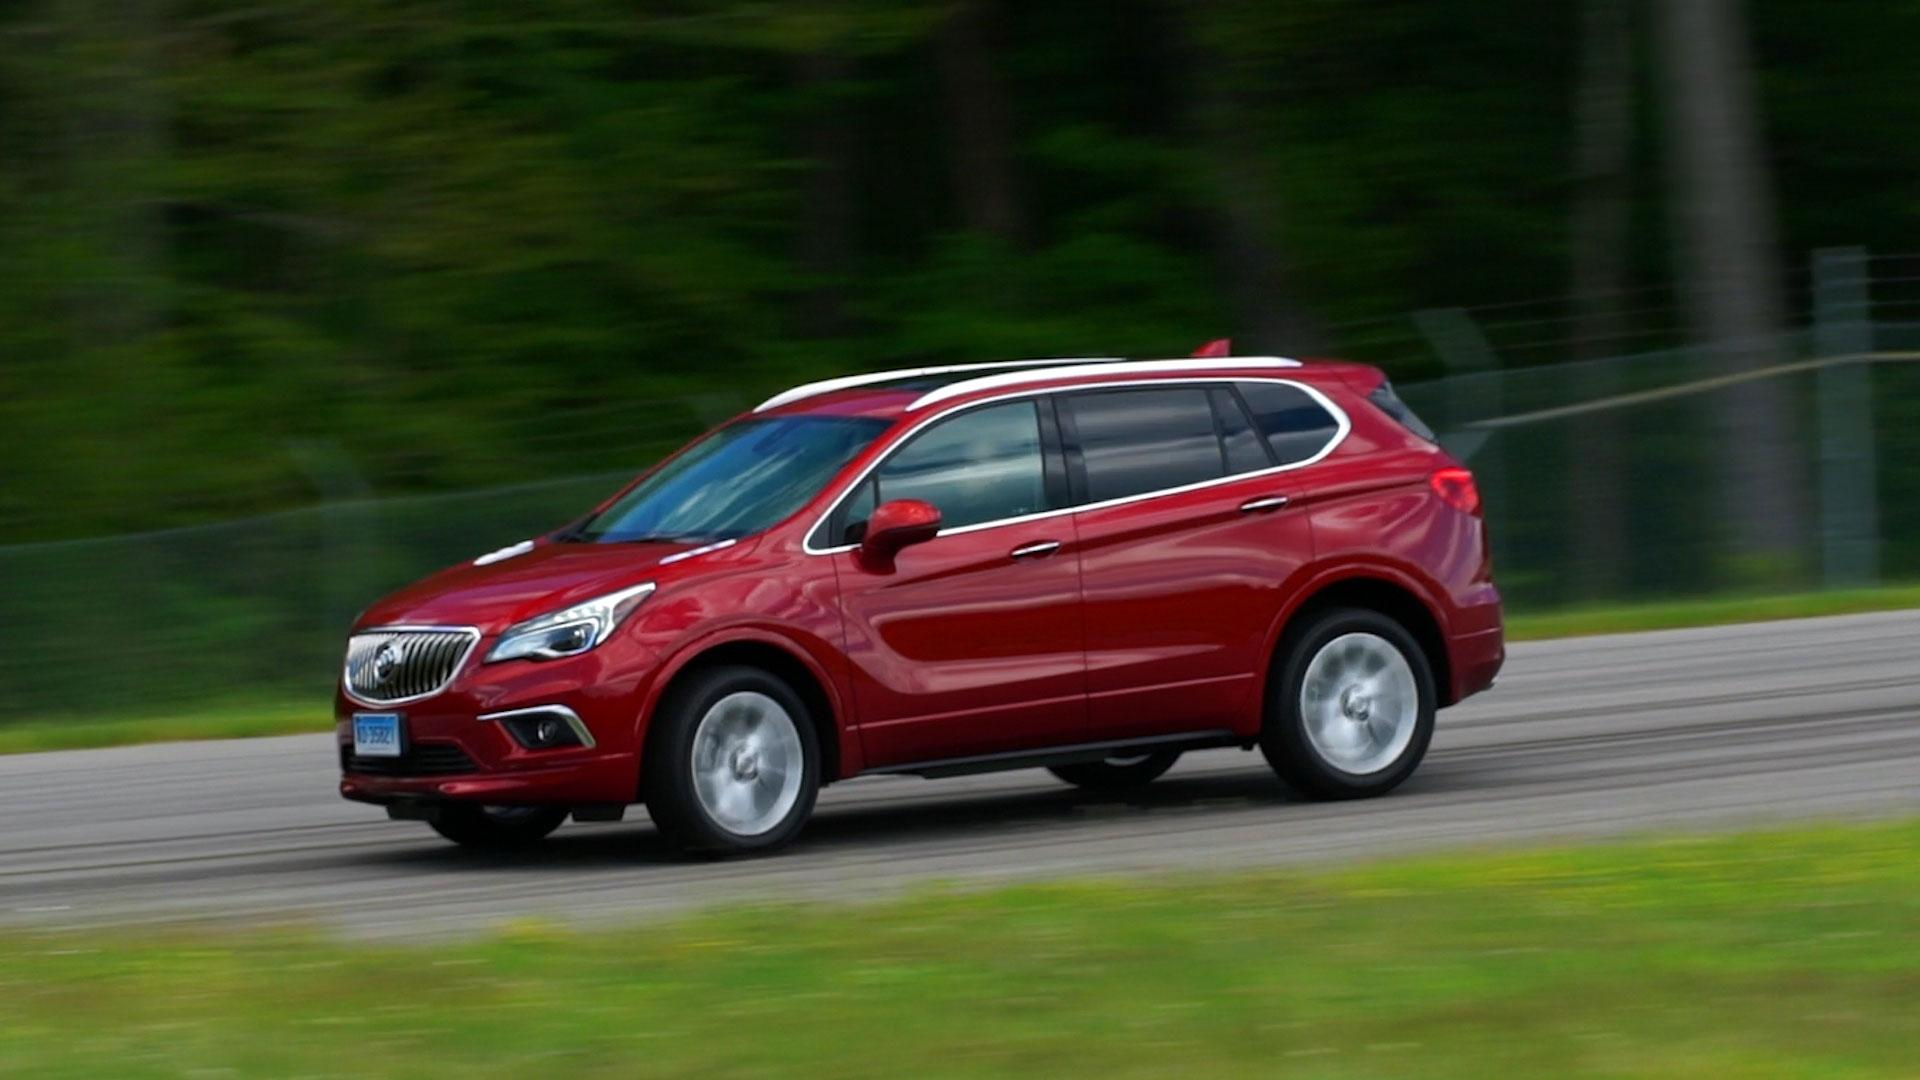 Measured against refined competitors the underdeveloped and overpriced buick envision misses its mark 2016 buick envision review